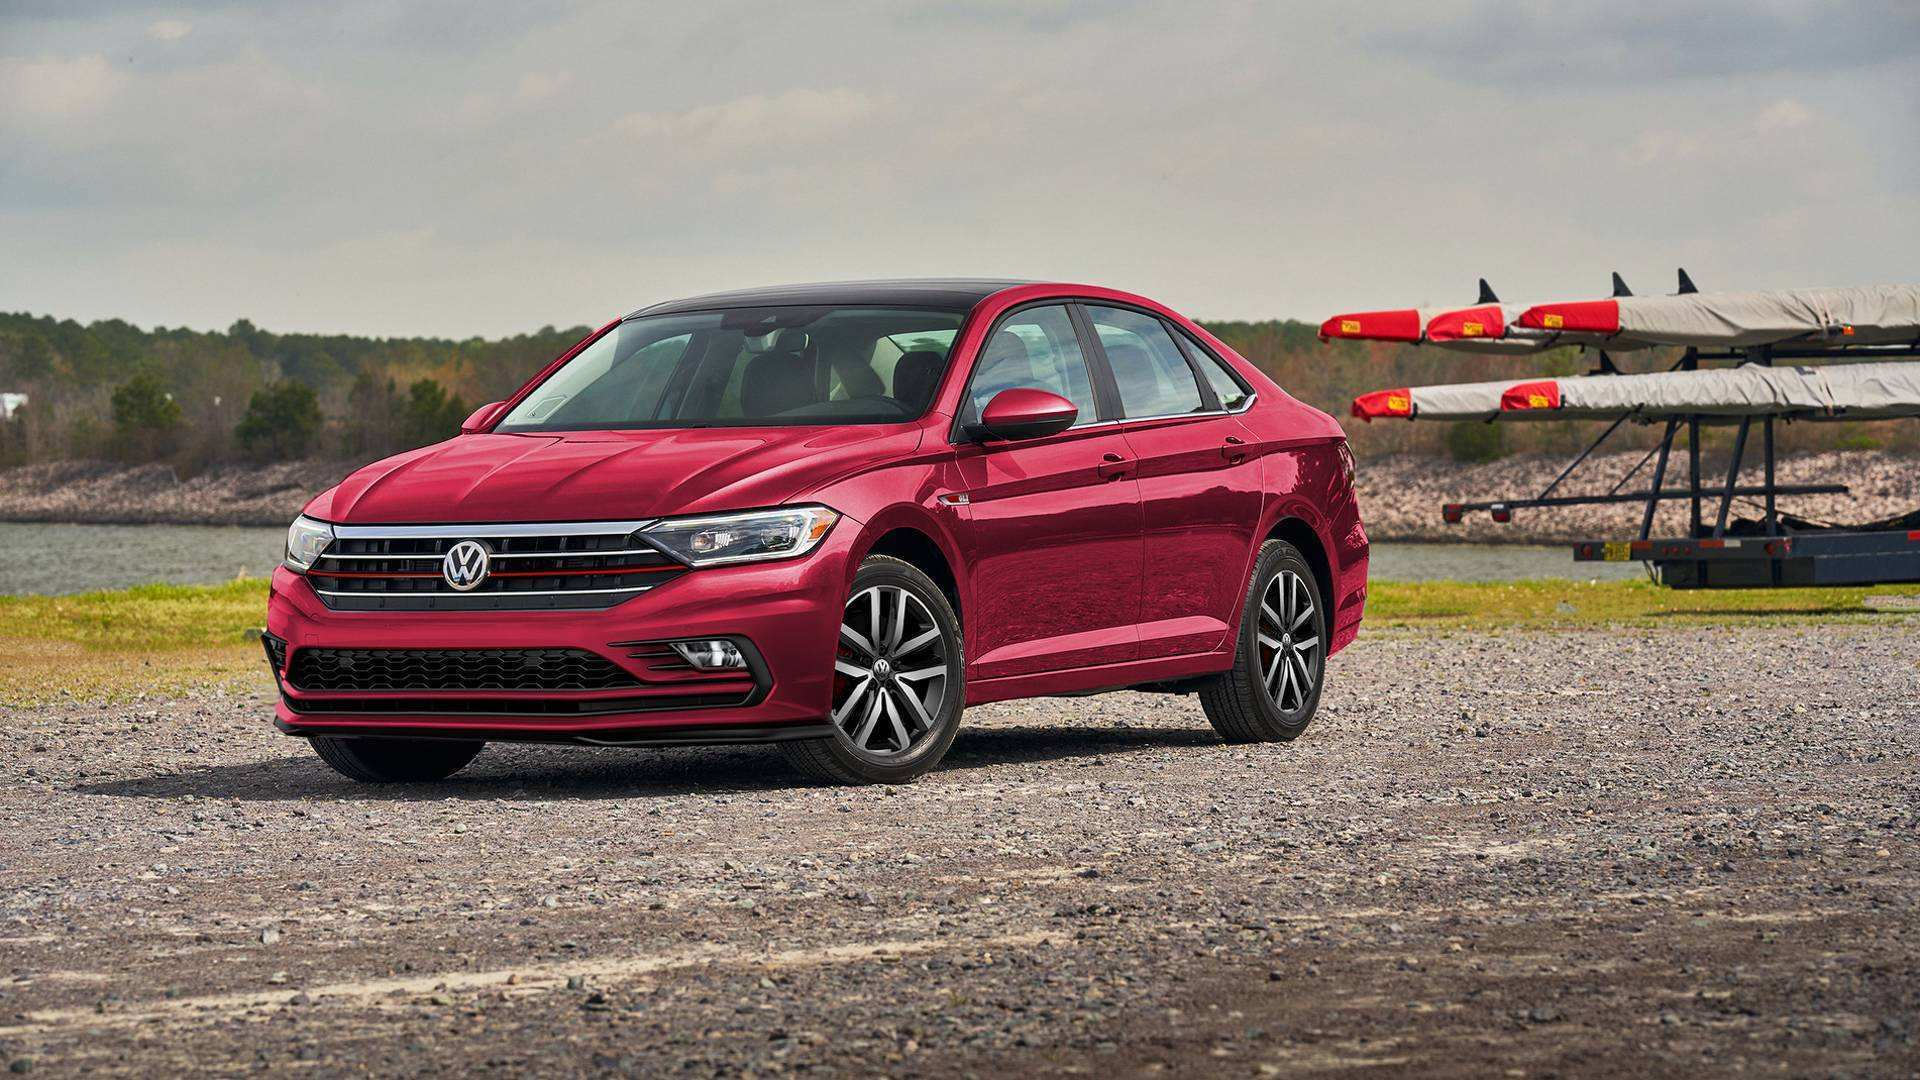 48 New 2020 Vw Jetta Tdi Performance And New Engine